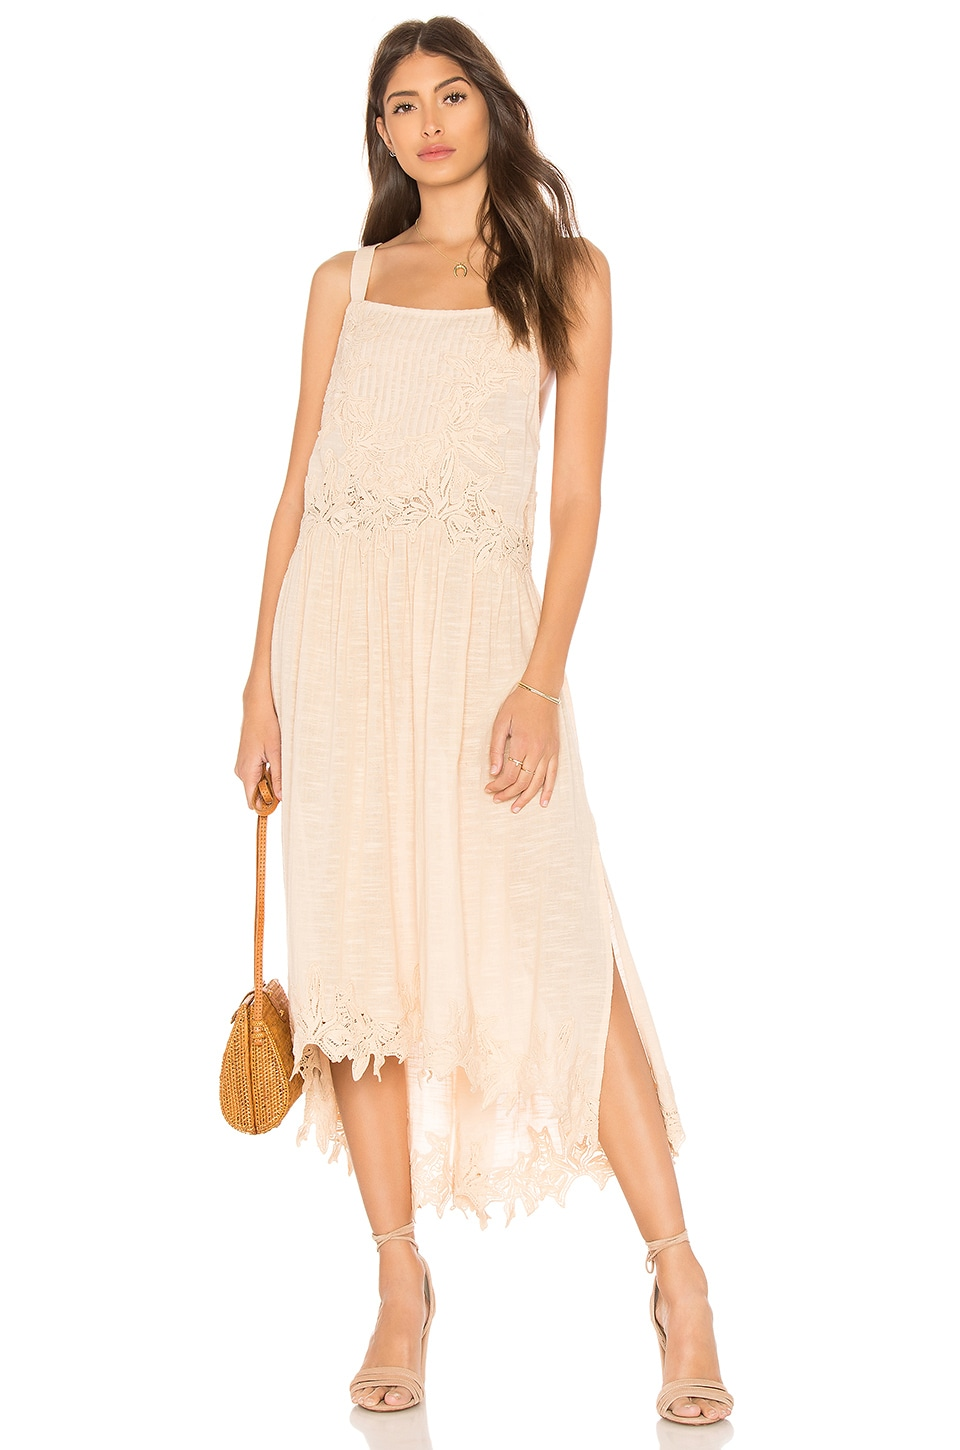 Free People In Your Arms Dress in Rose